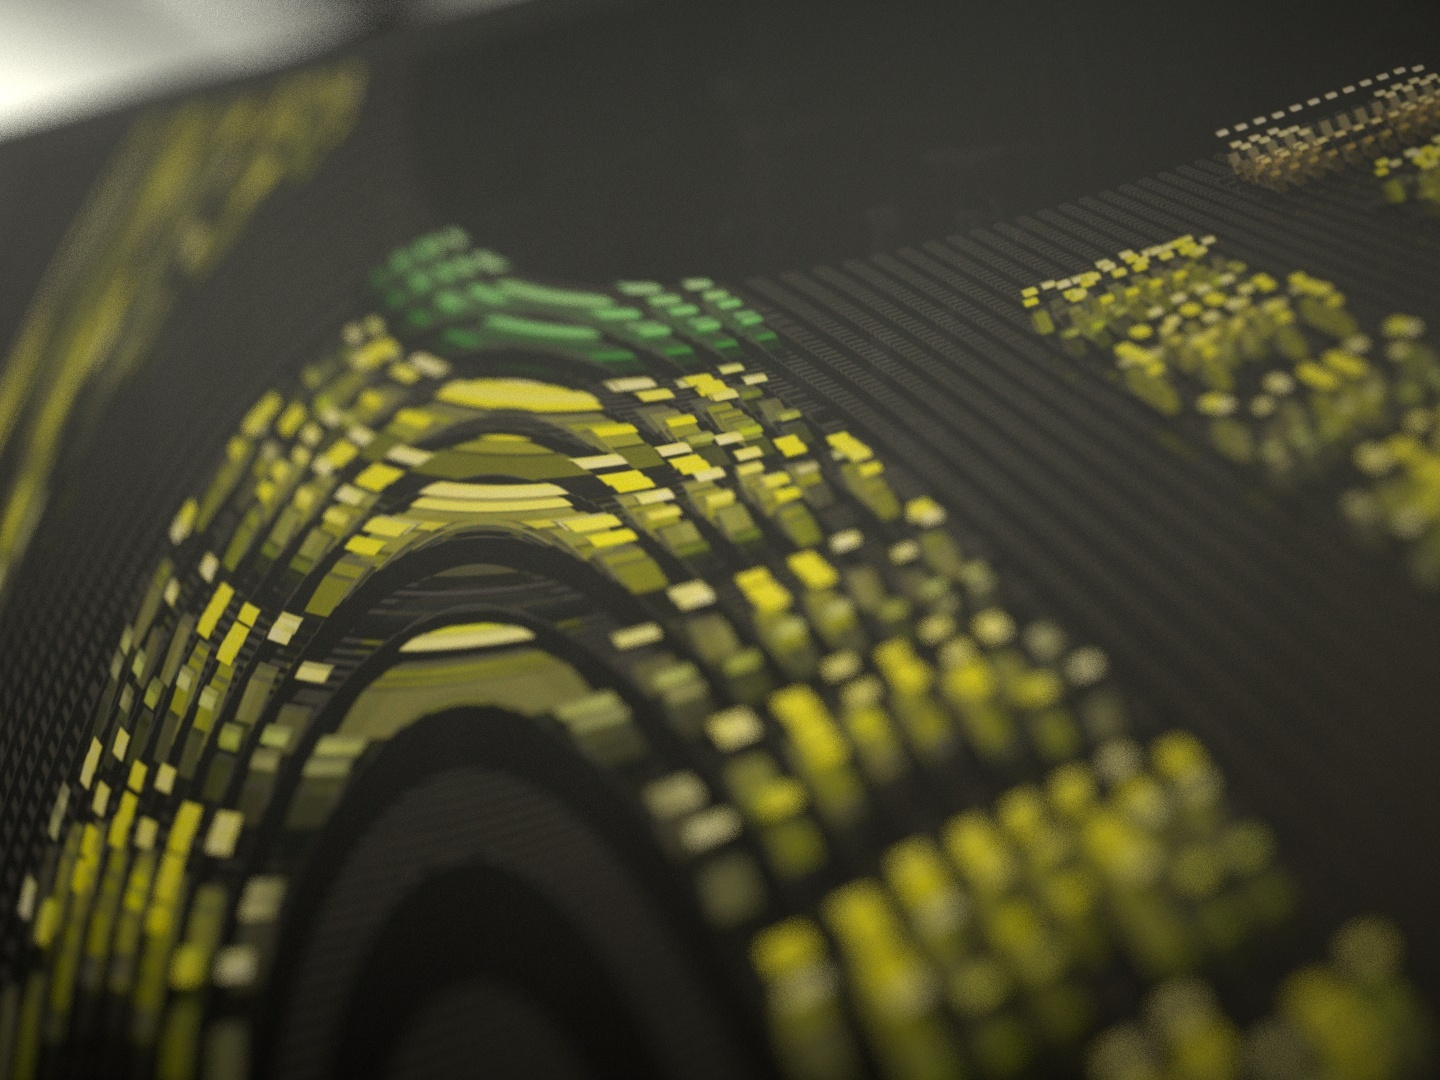 Style Frame gaming atari video game space invaders animation illustration octane after effects c4d motion design cinema 4d render motion graphics 3d art direction